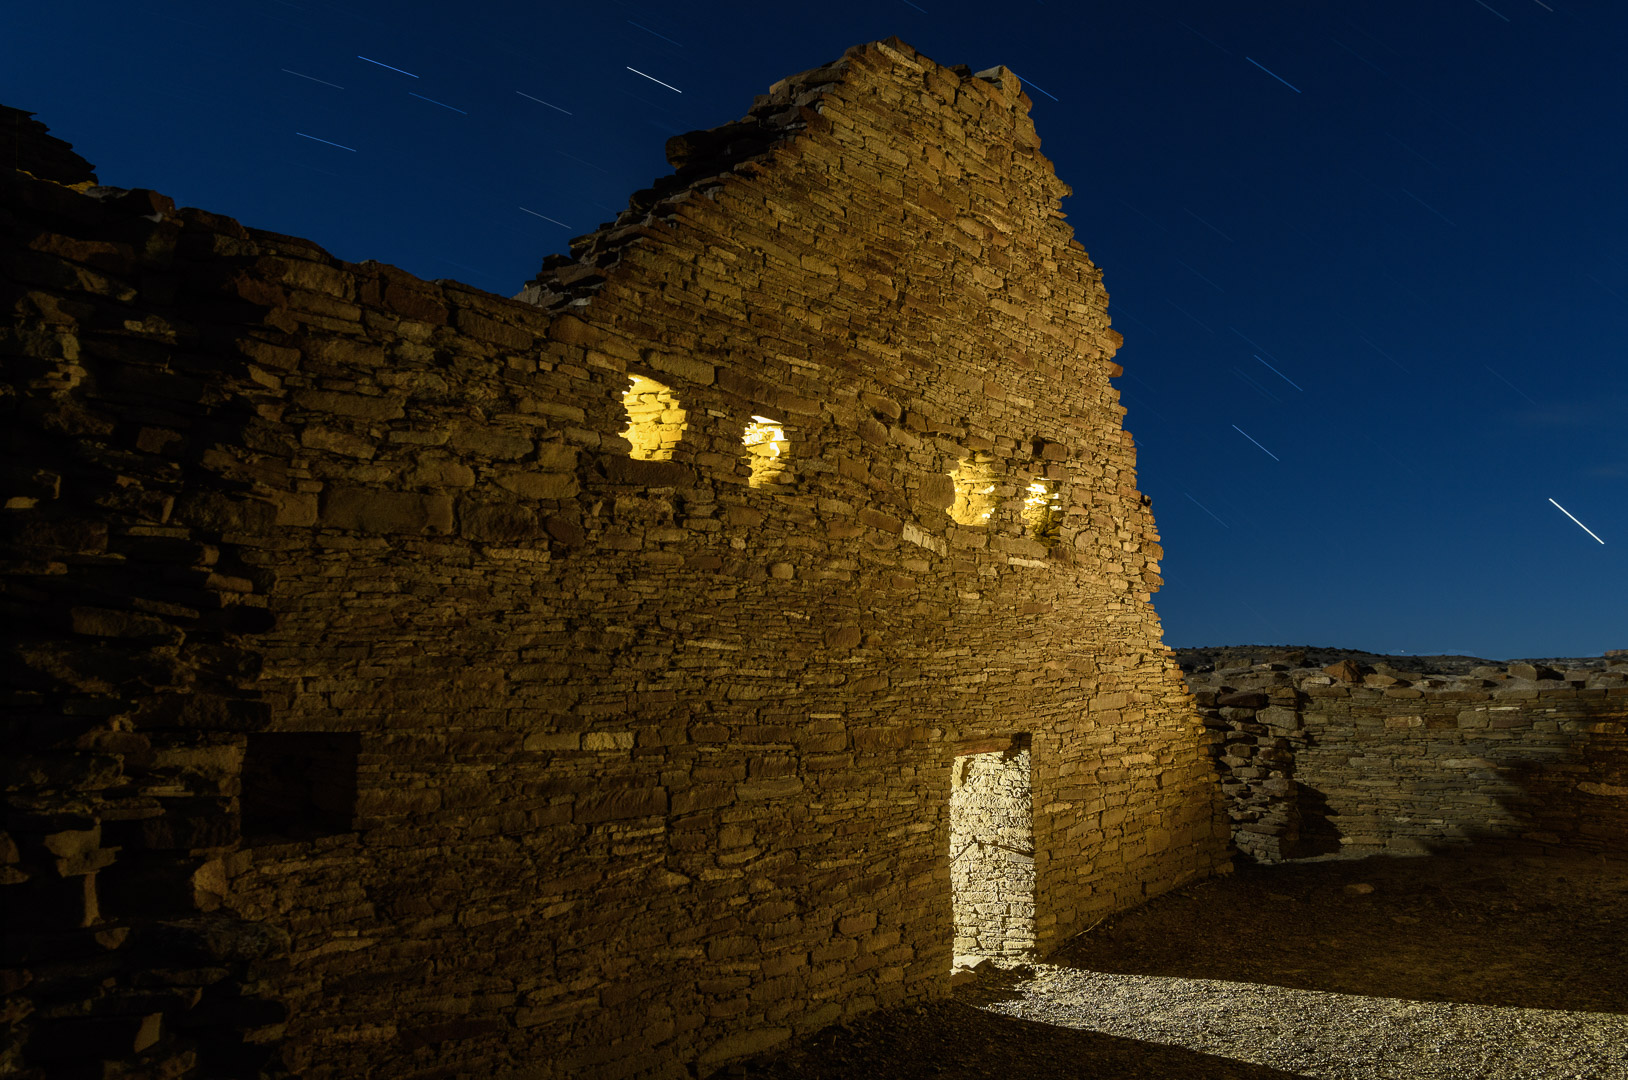 Chaco Canyon National Historical Park.  Nikon D5  with a  Nikon 24-70mm f/2.8  lens, light painted with a  Coast HP7R  flashlight and a  Luxli Viola  panel light. 10.5 minutes, f/11, ISO 100. © 2018 Chris Nicholson.